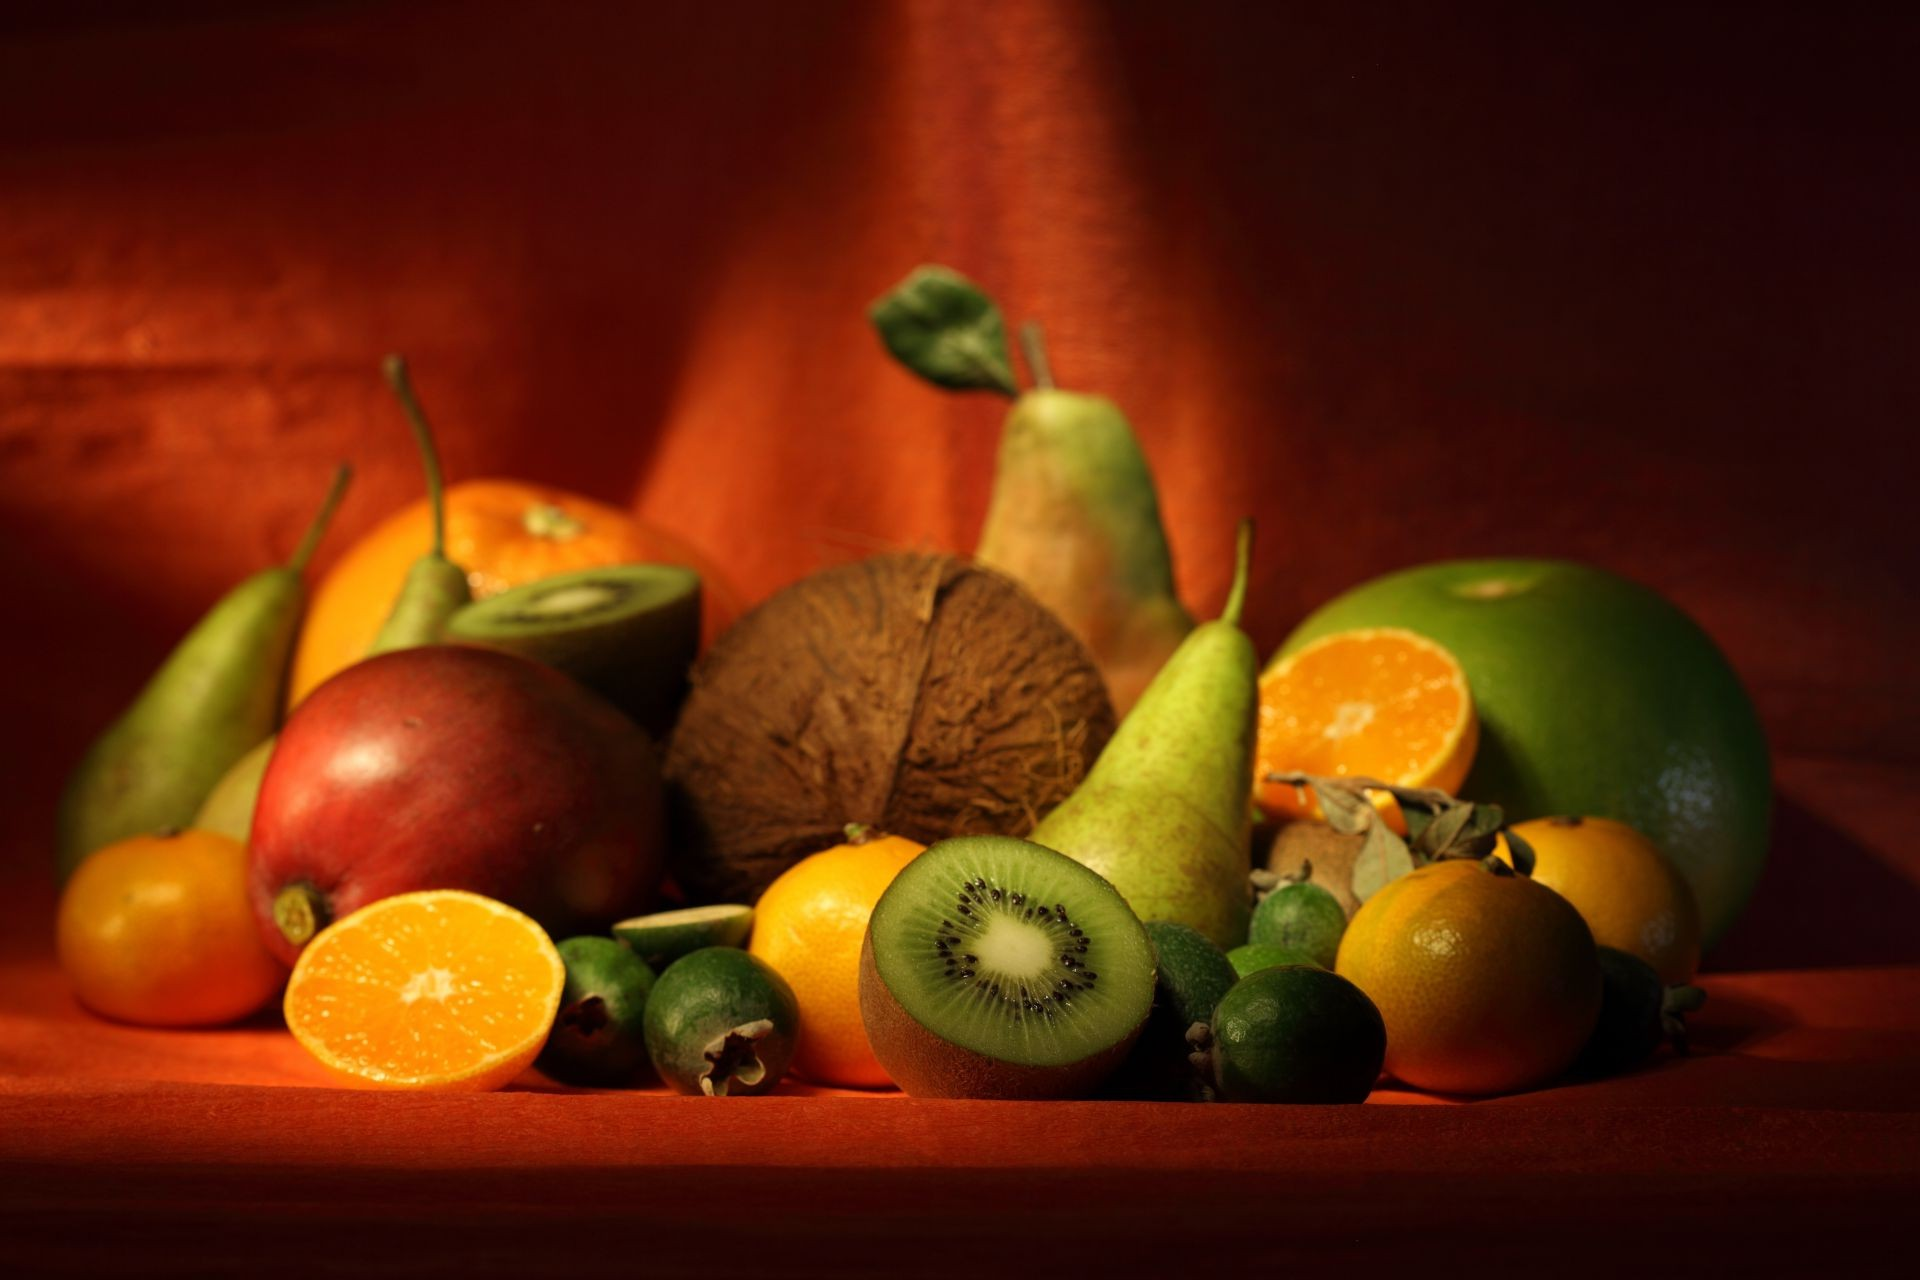 fruit food apple grow still life vegetable lemon tomato nutrition leaf delicious pear